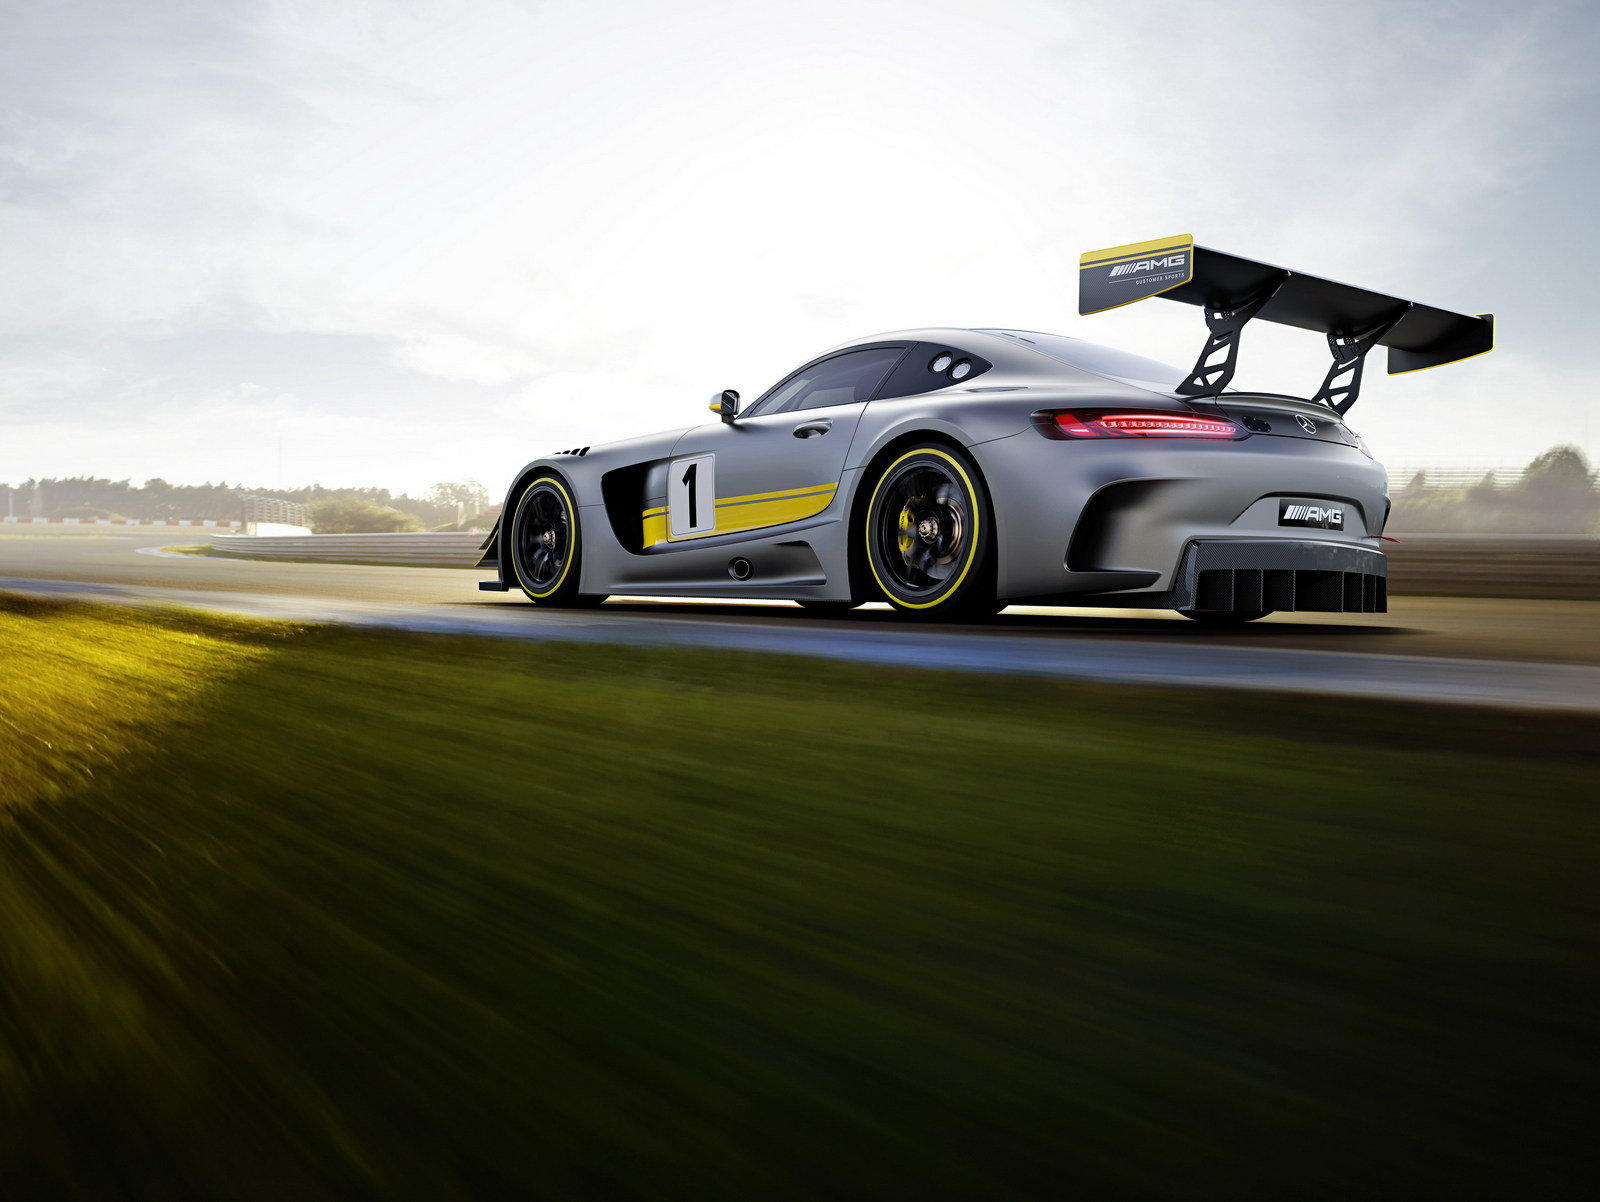 2016 mercedes amg gt3 picture 619804 car review top speed. Black Bedroom Furniture Sets. Home Design Ideas